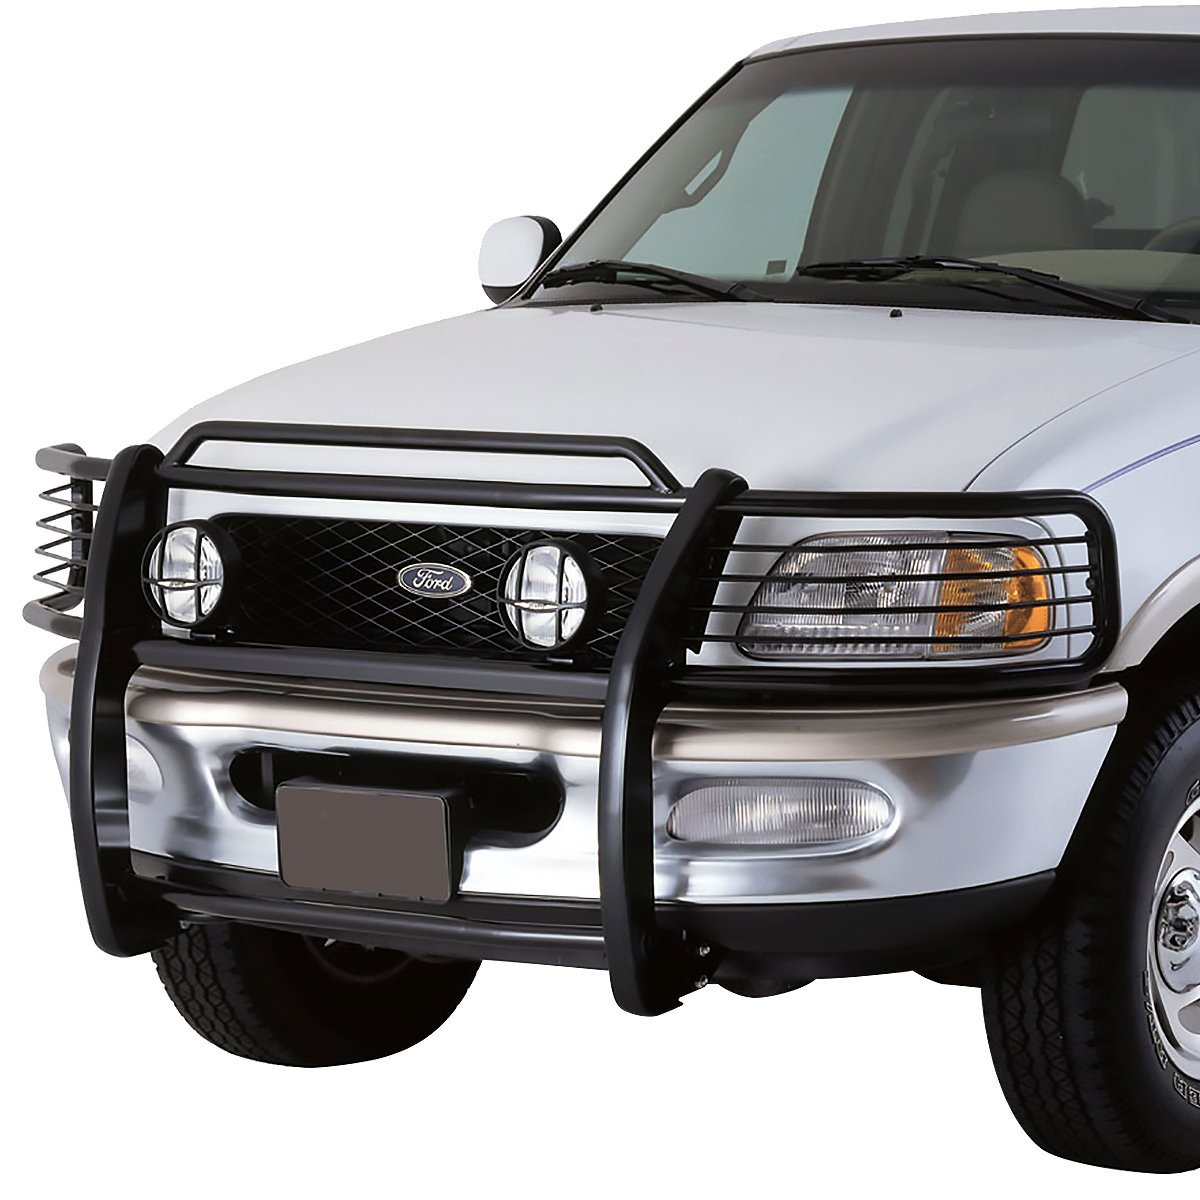 Ford Expedition 2004 99-02 Ford Expedition / 99-03 F150 / F250 2WD Front Bumper ...